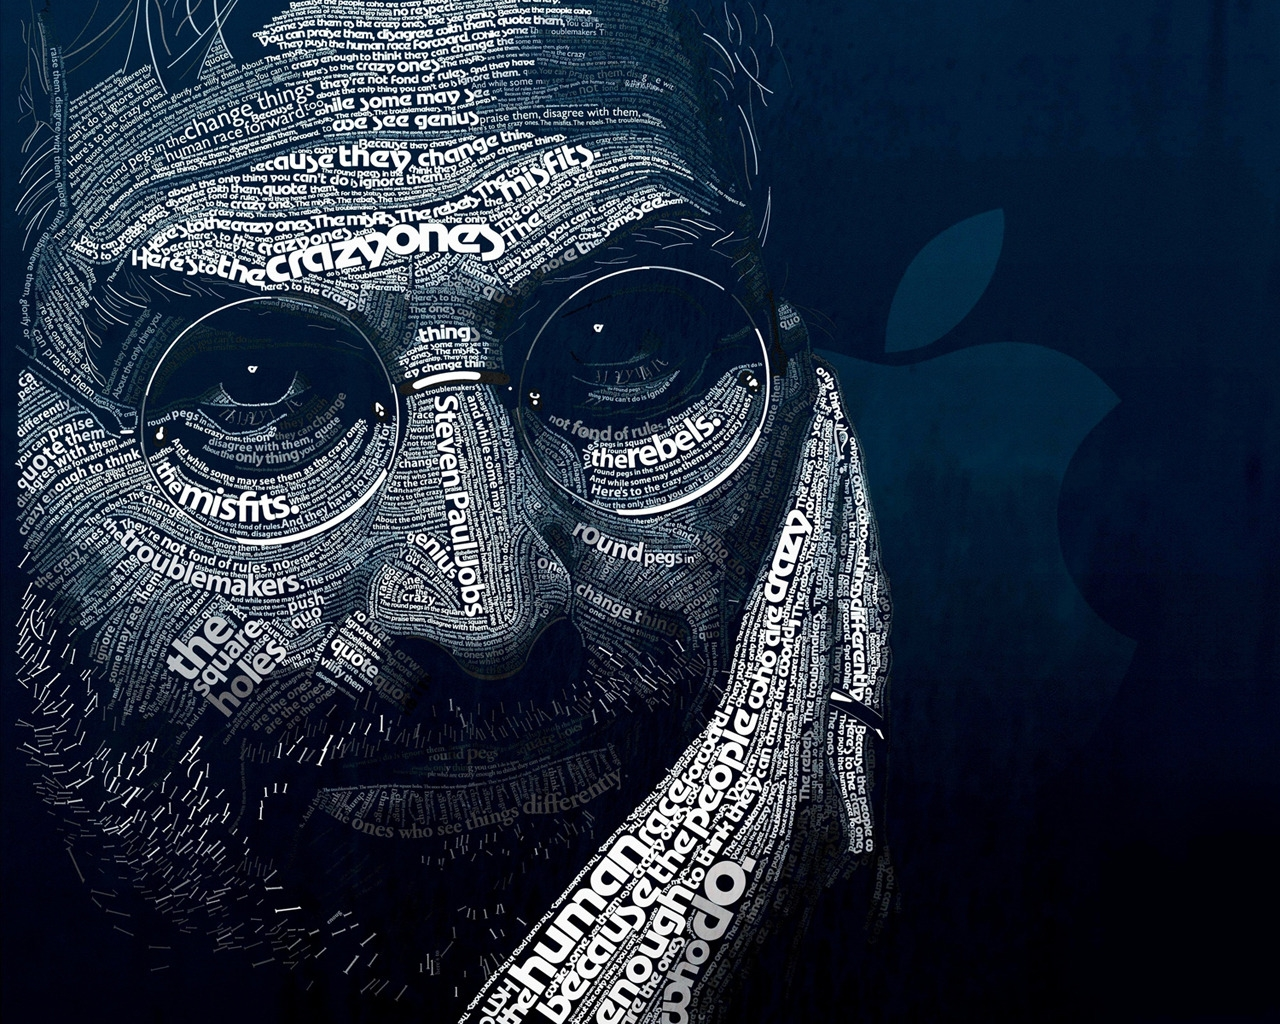 Steve Jobs Word Art for 1280 x 1024 resolution